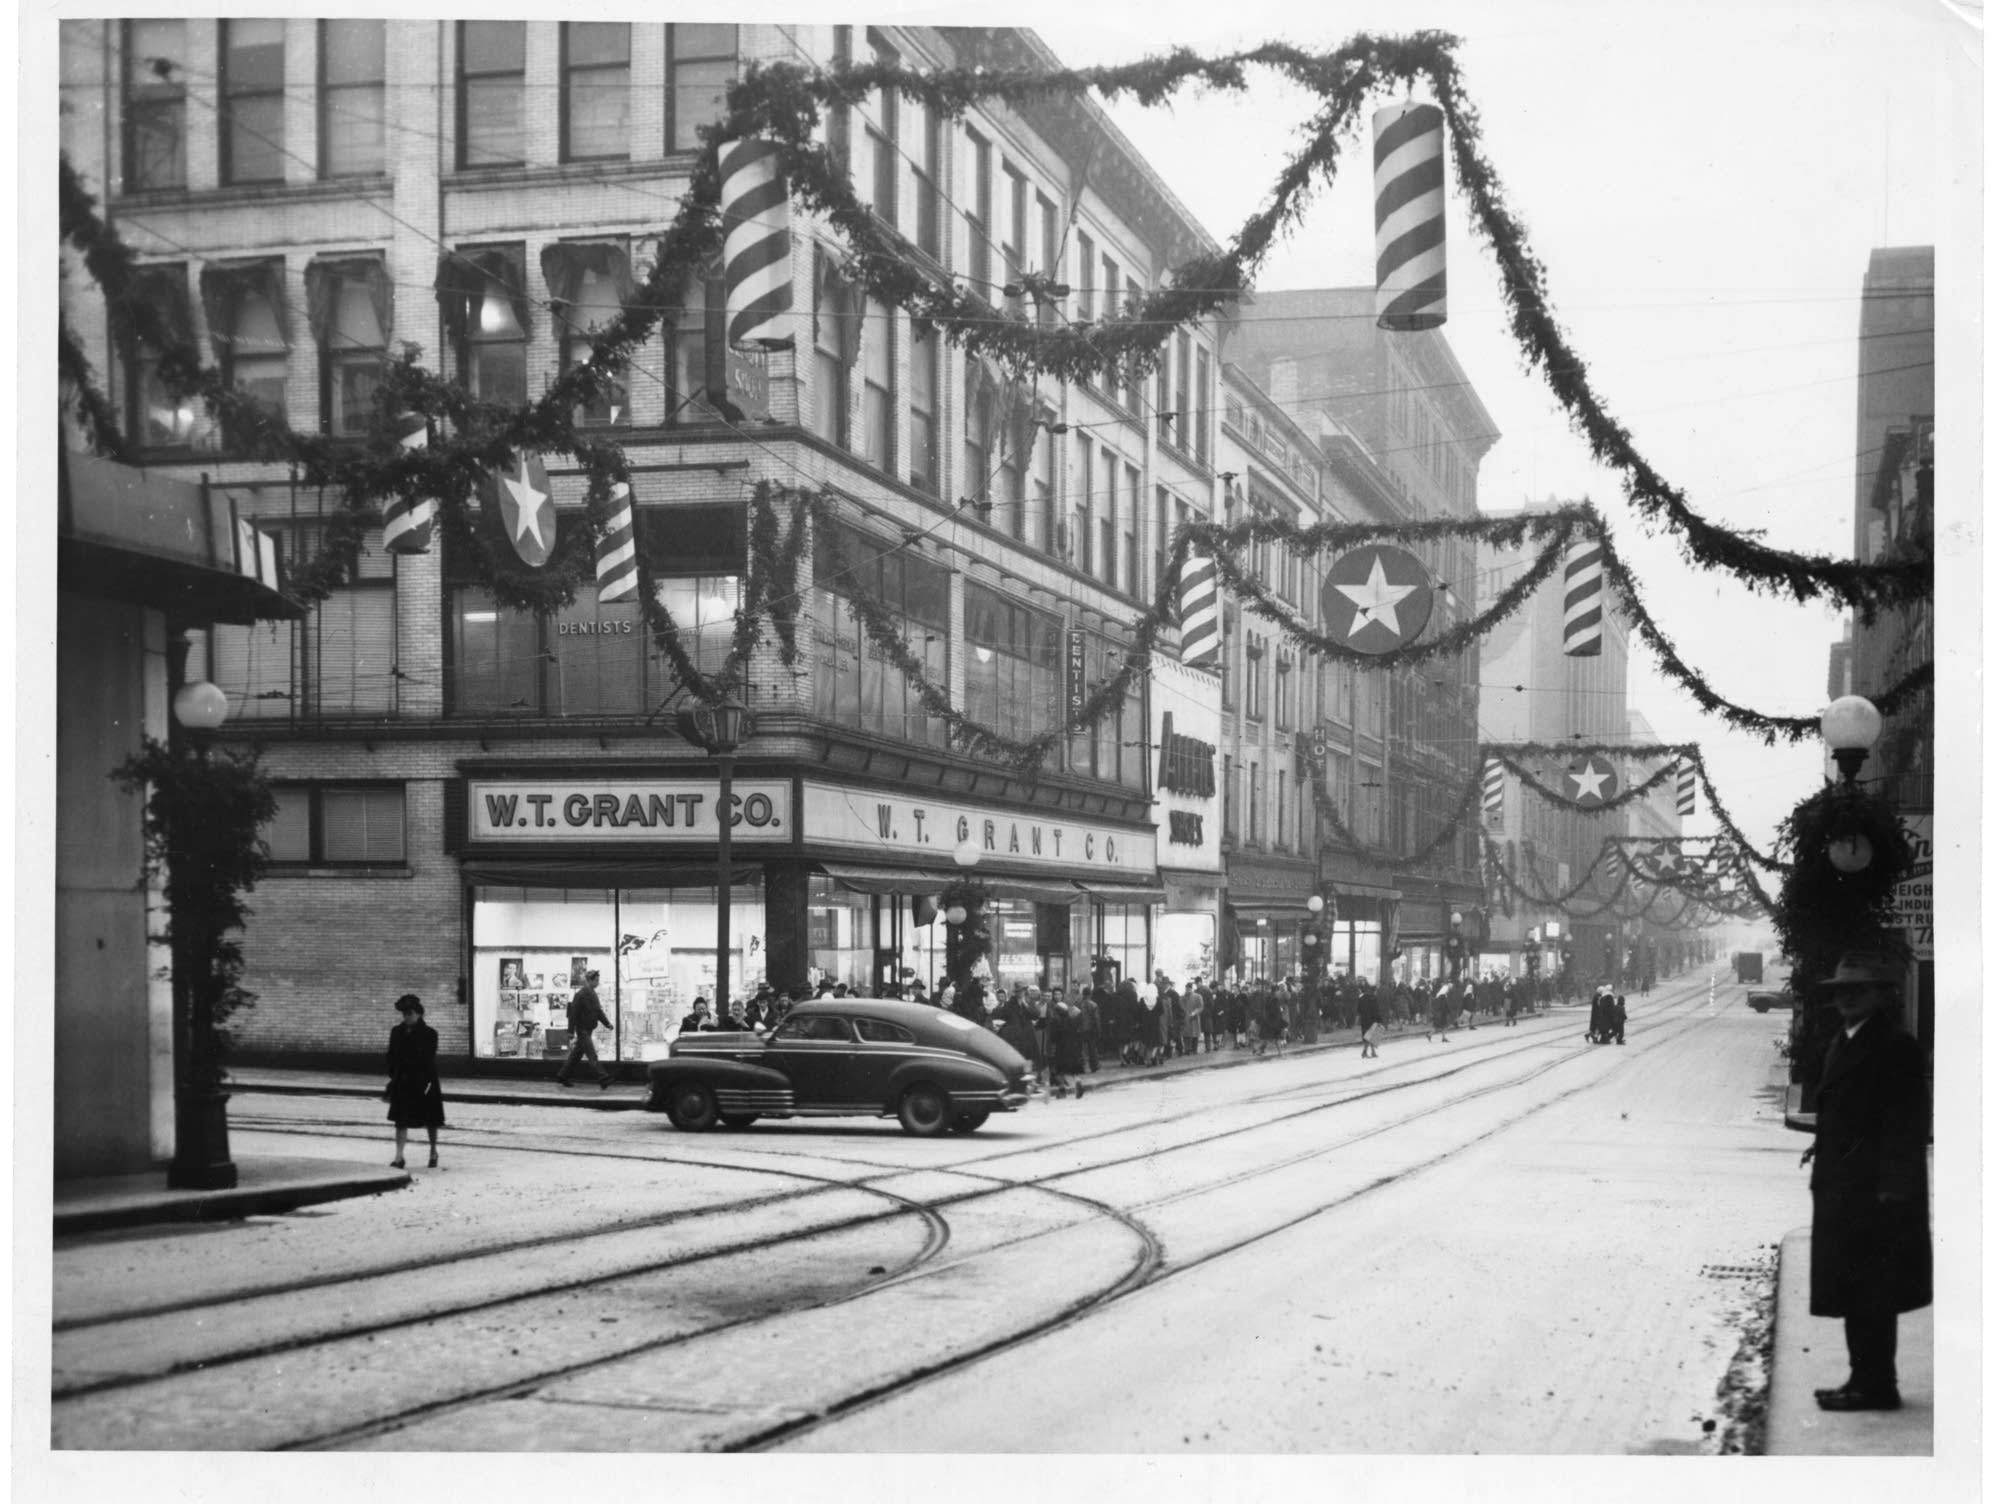 Holiday shopping in St. Paul in 1946.